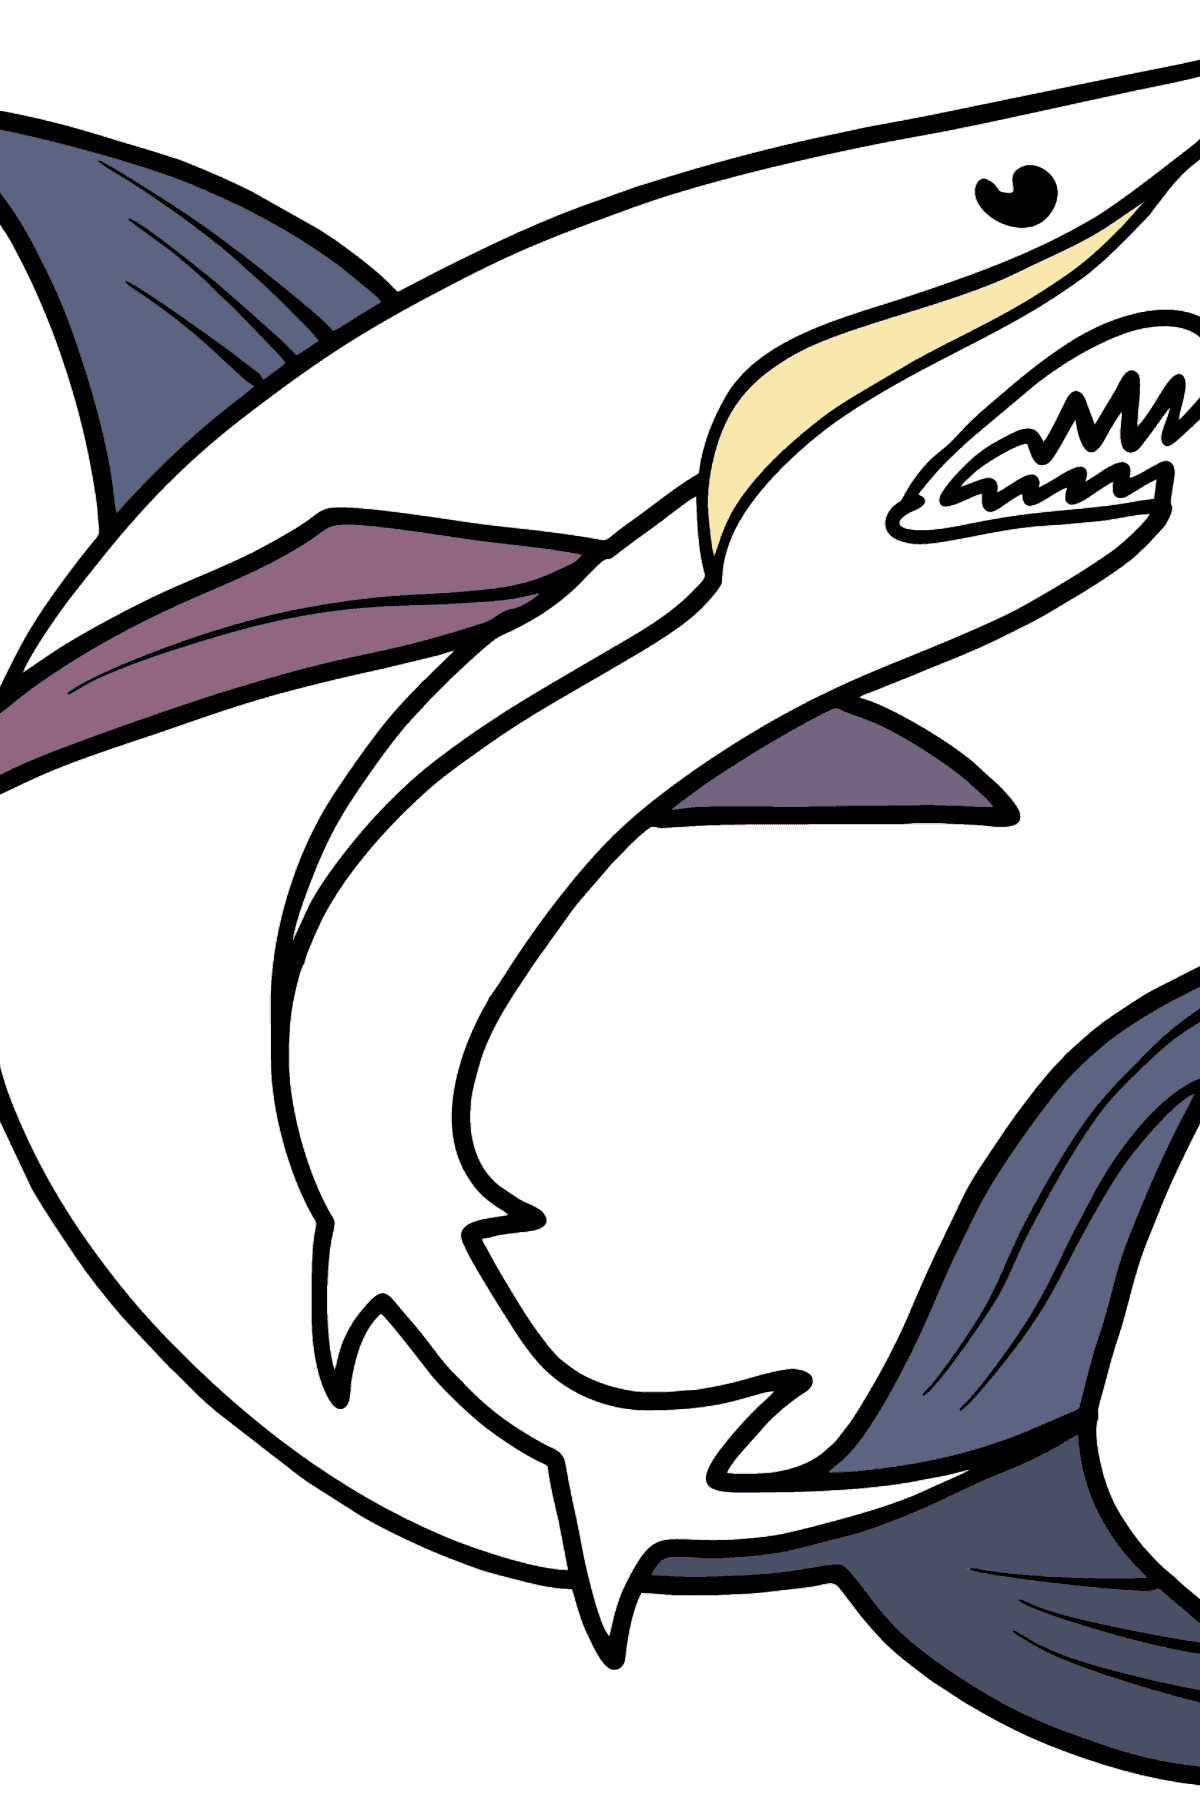 Shark coloring page - Coloring Pages for Kids